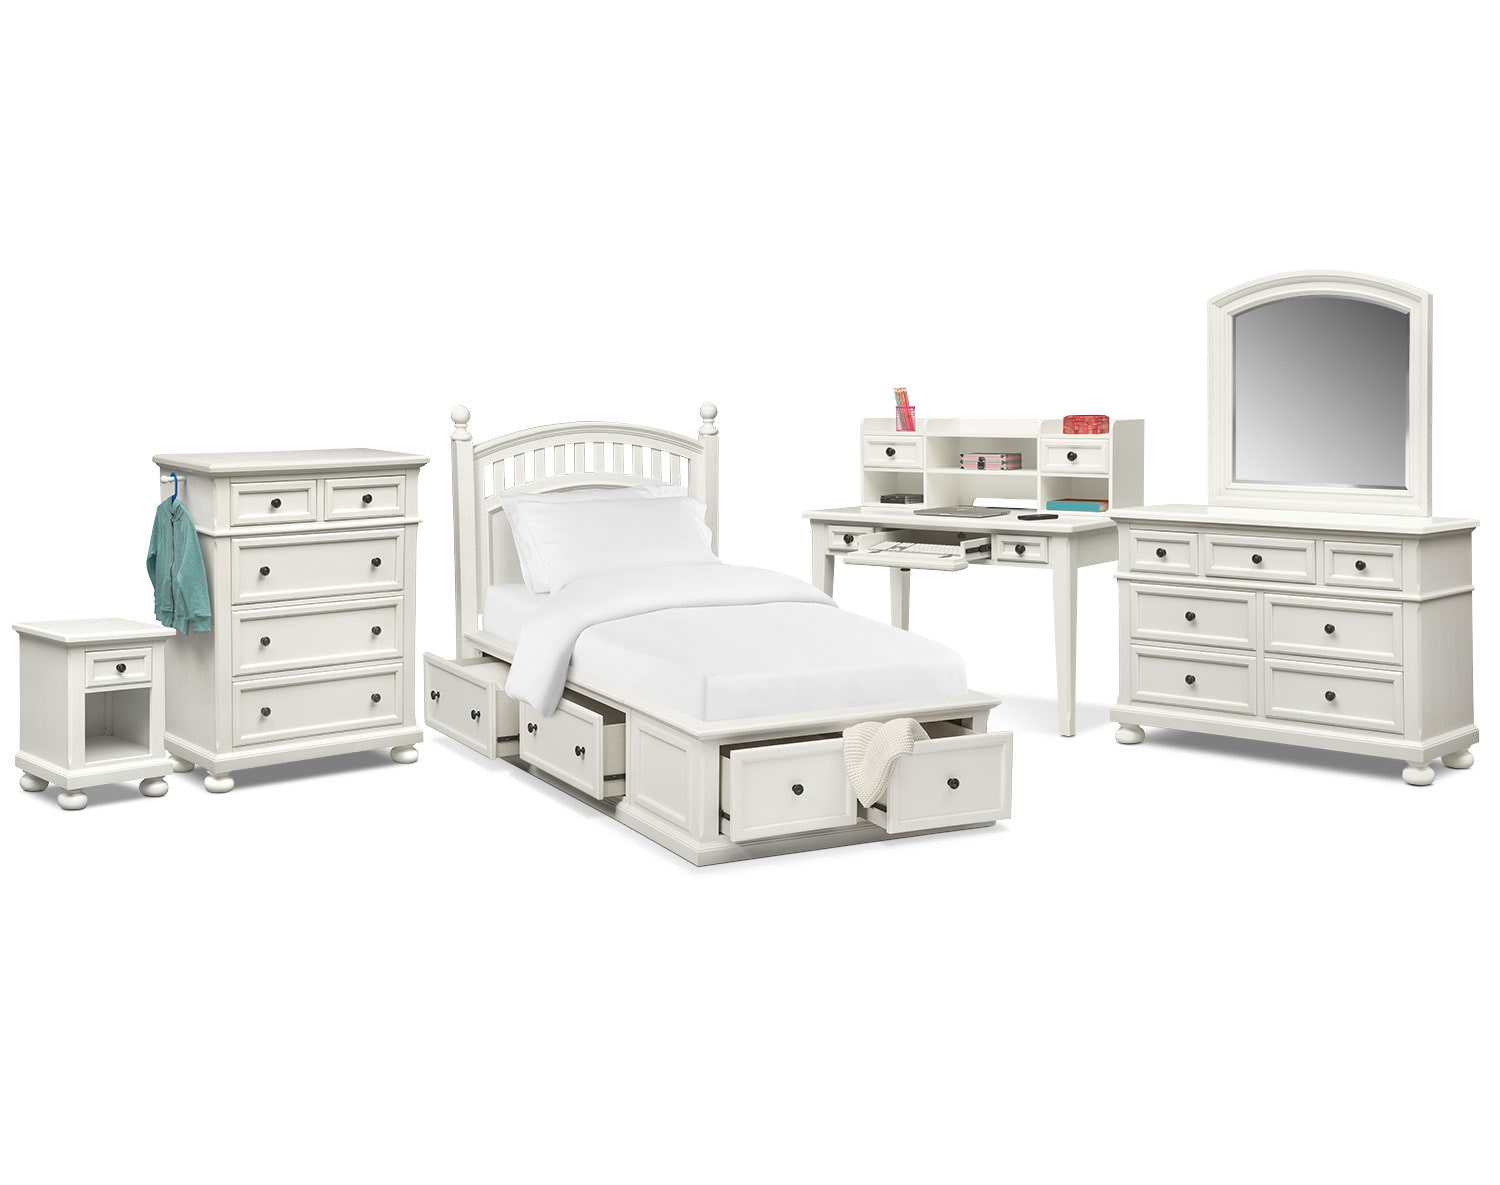 The Hanover Youth Bedroom Collection - White